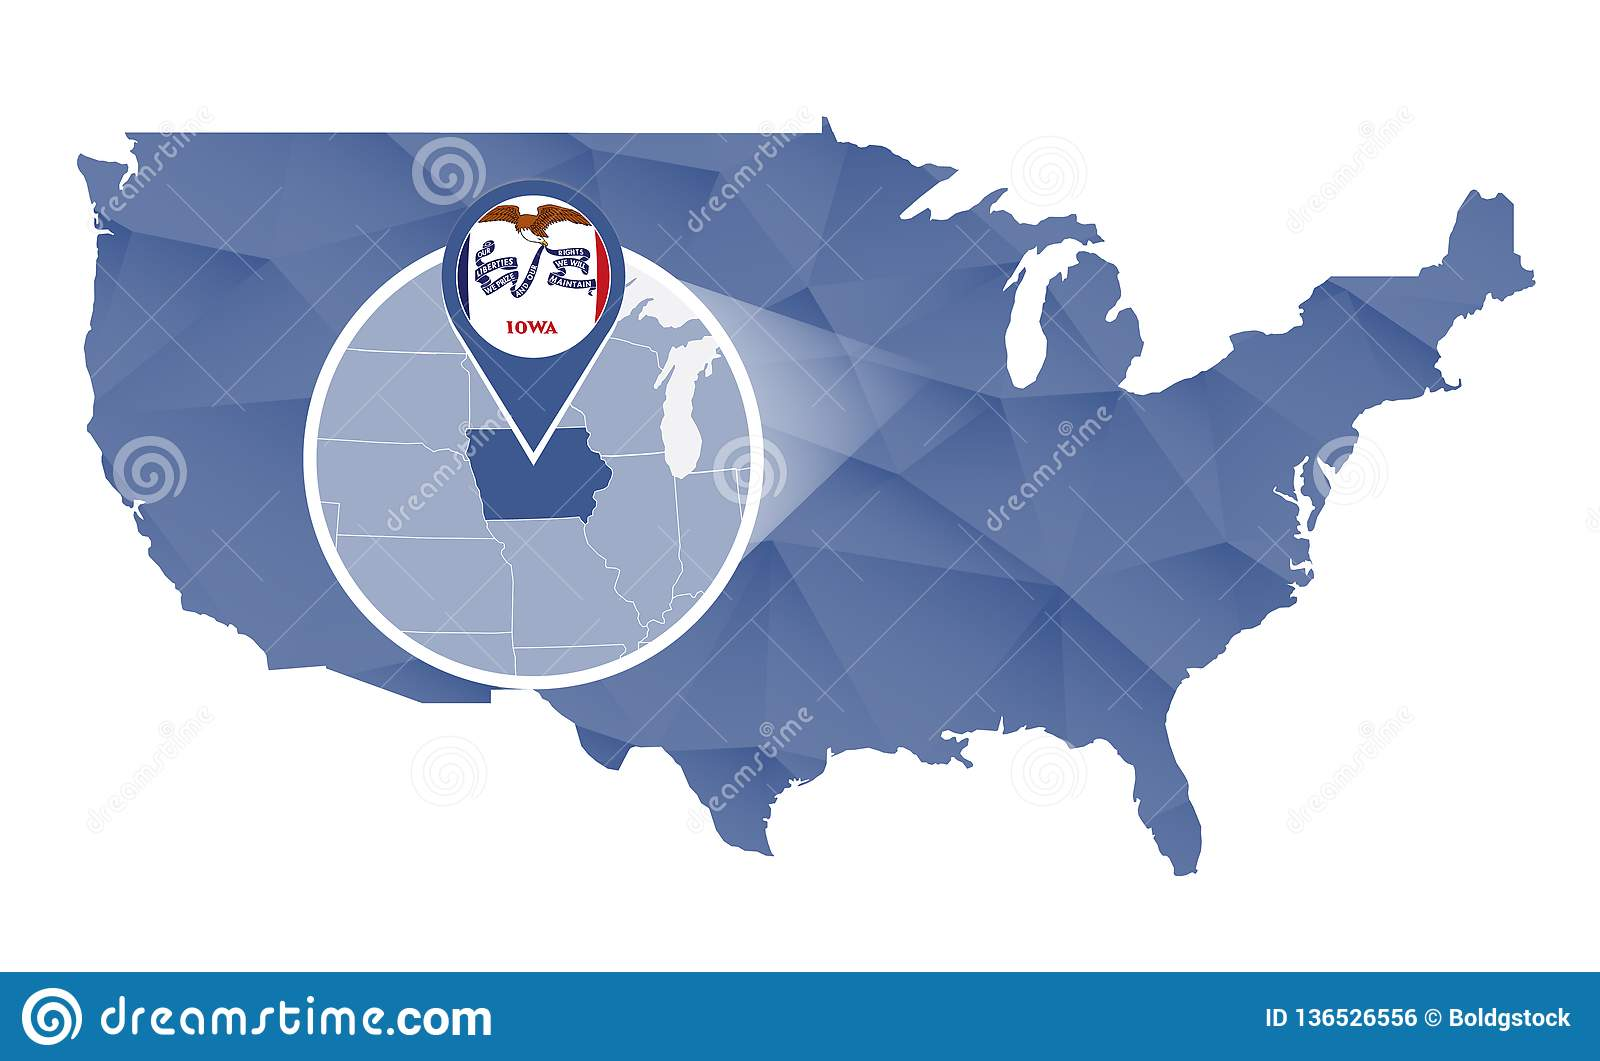 Iowa State Magnified On United States Map Stock Vector ...